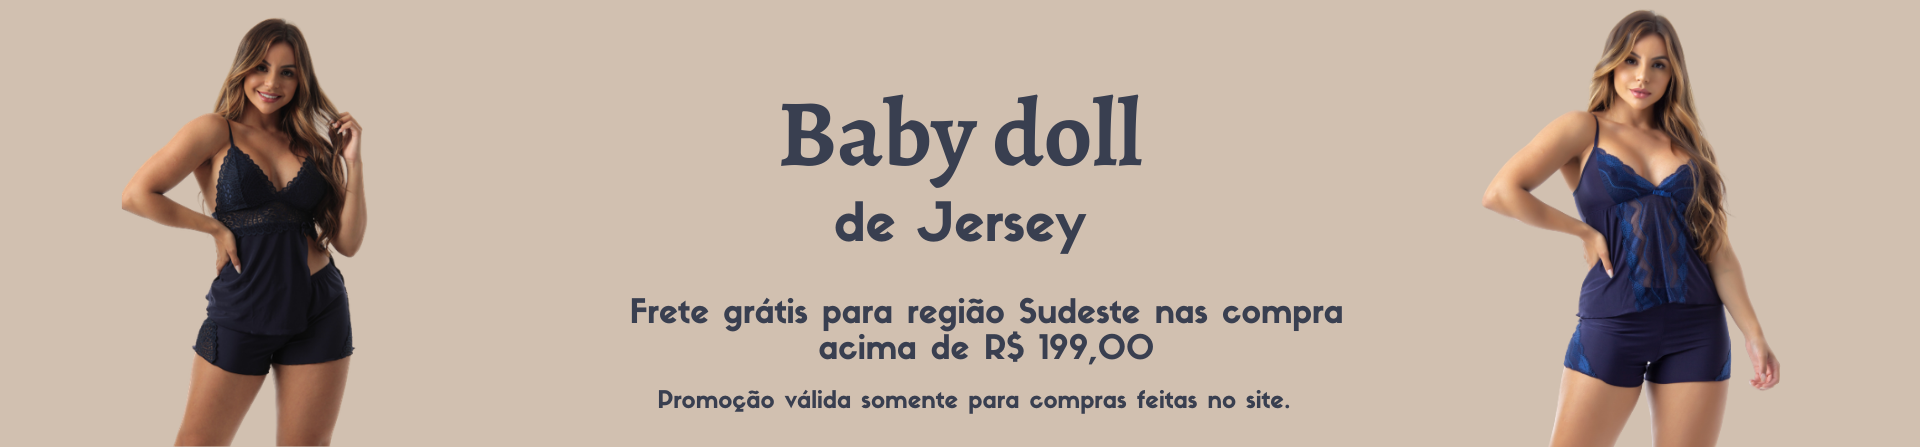 Baby doll jersey